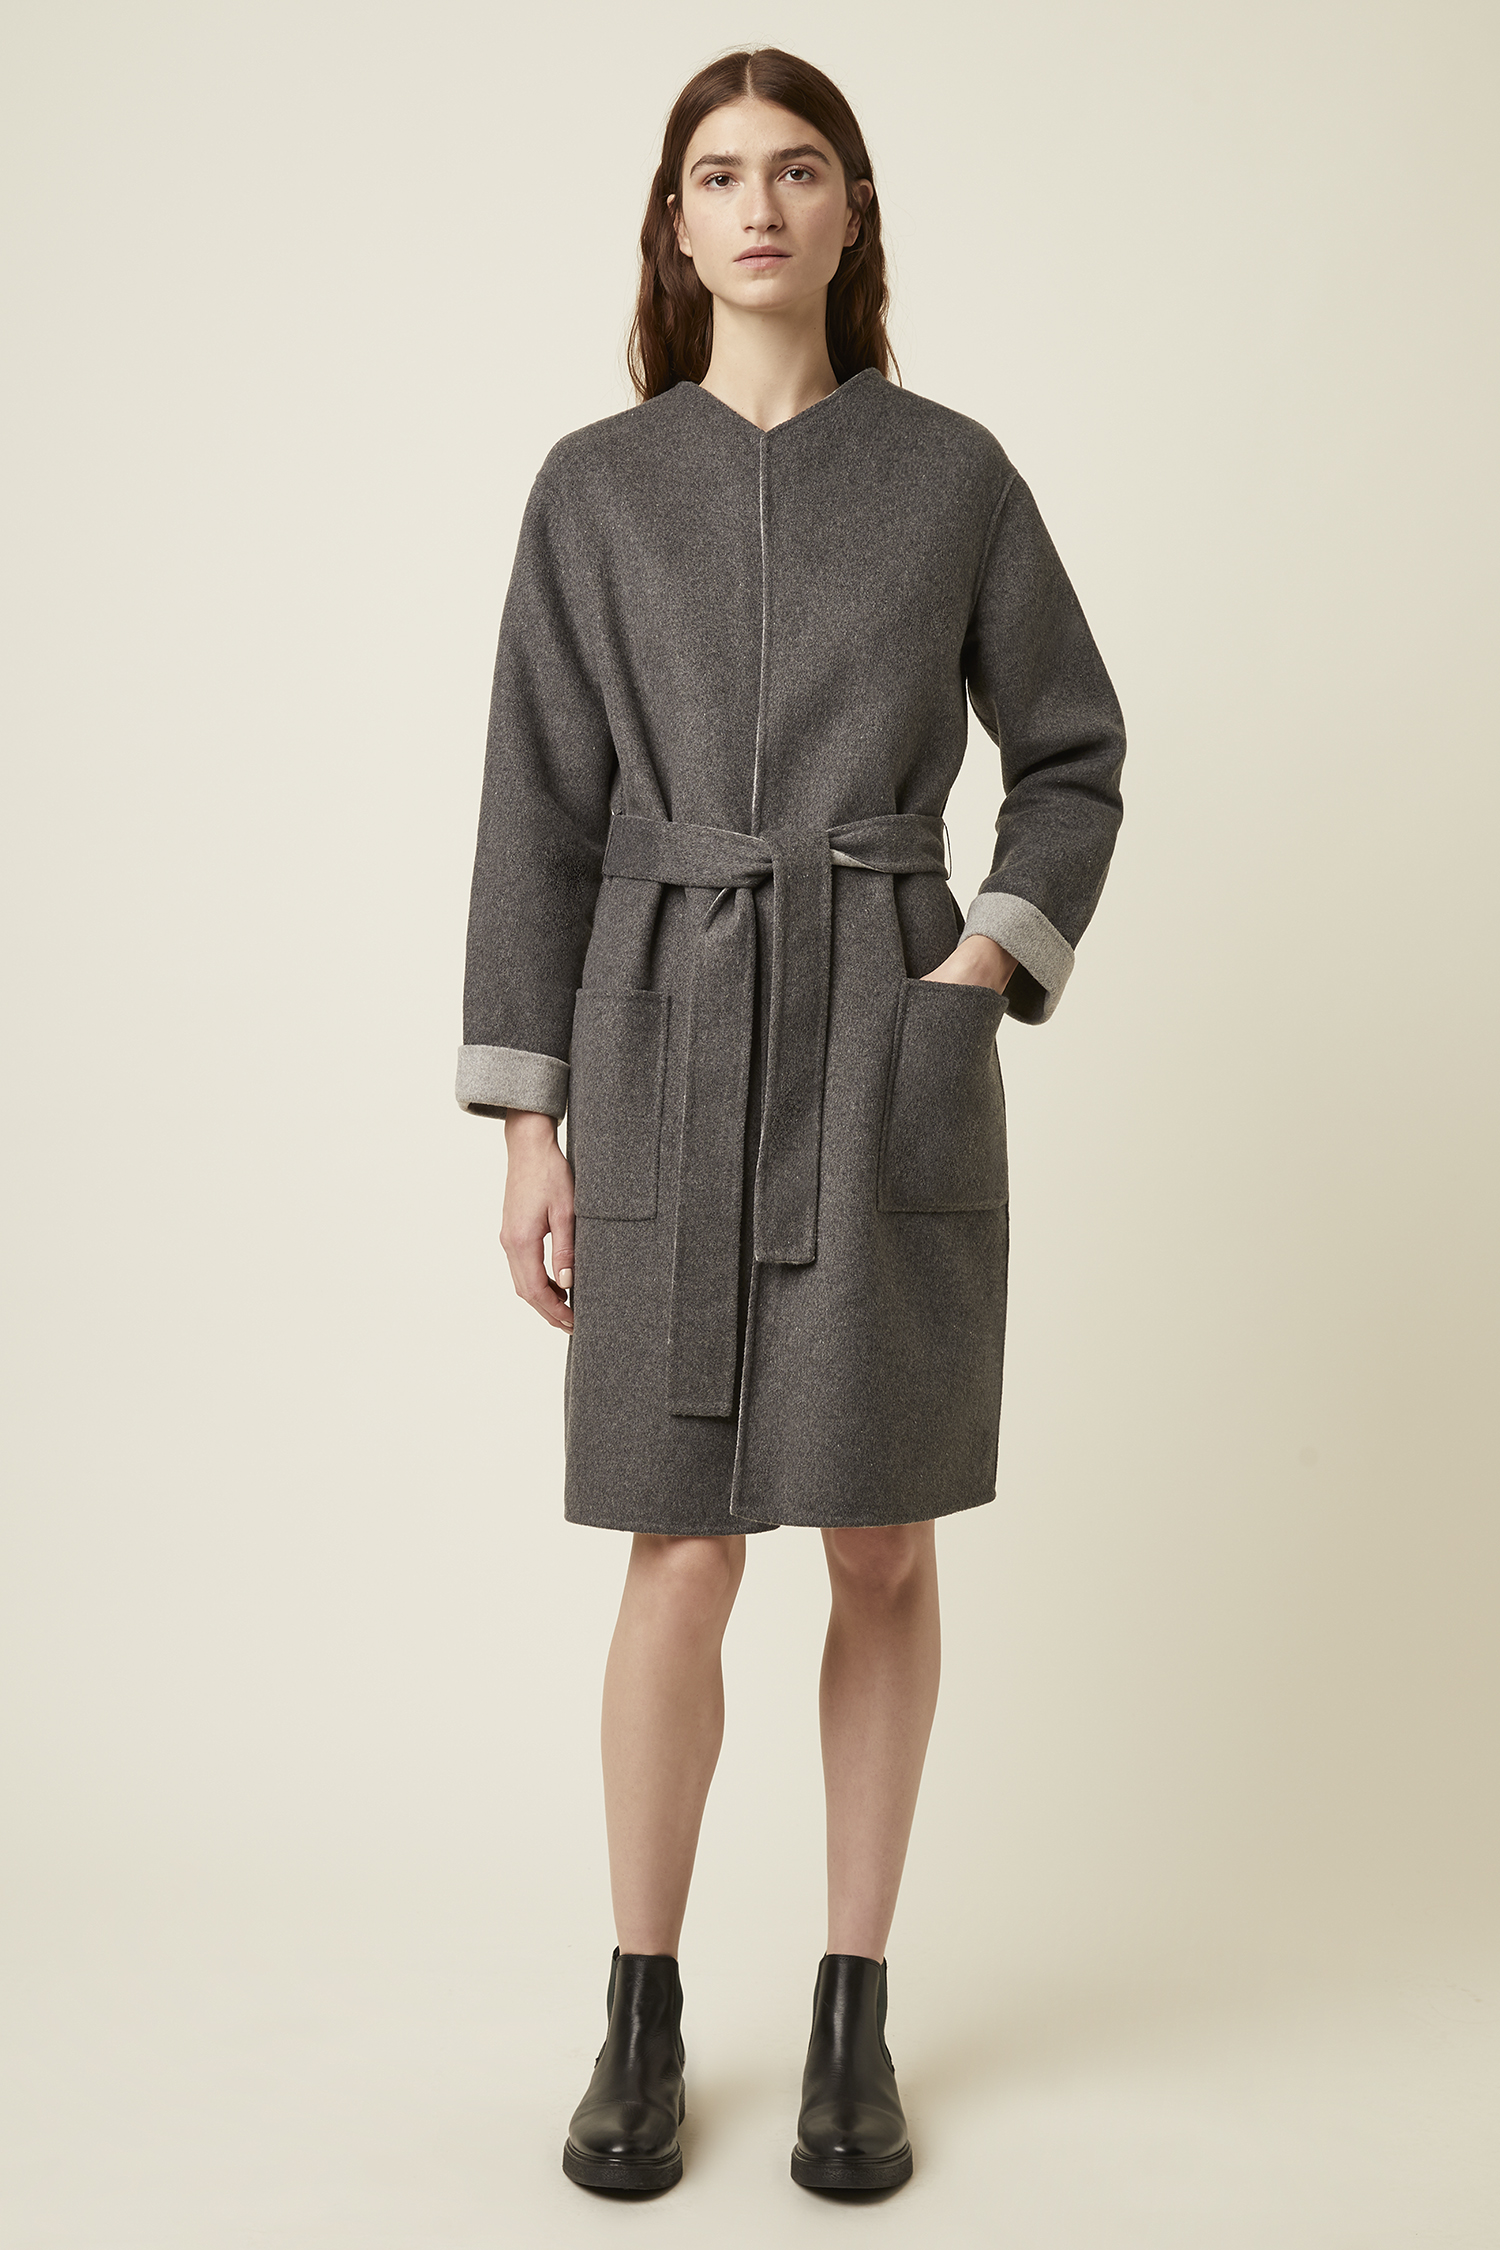 https://www.greatplains.co.uk/product/womens-coats-and-jackets/j0mag/doublefaced-wool-blend-coat.htm